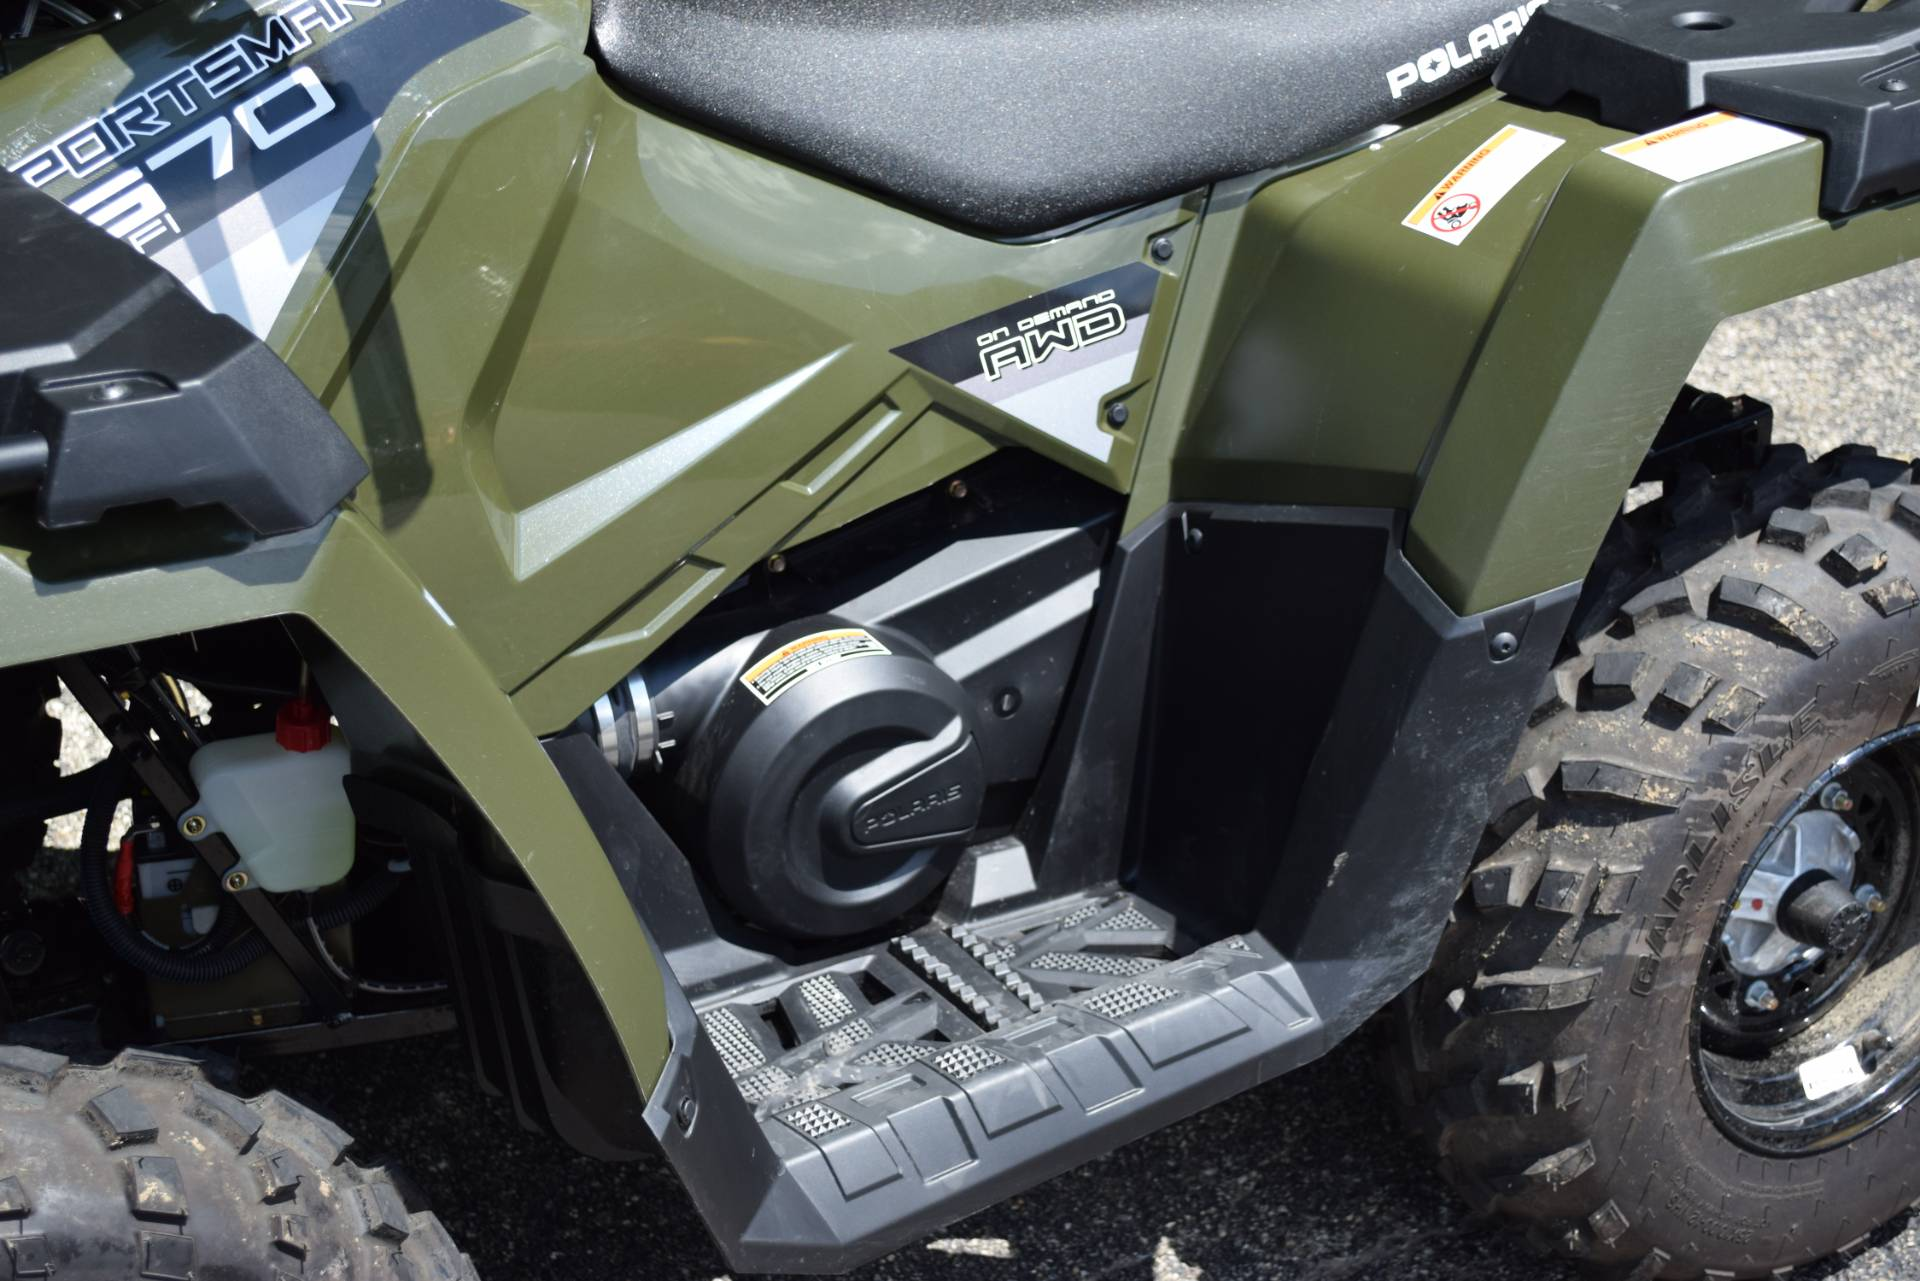 2016 Polaris Sportsman 570 in Wauconda, Illinois - Photo 22